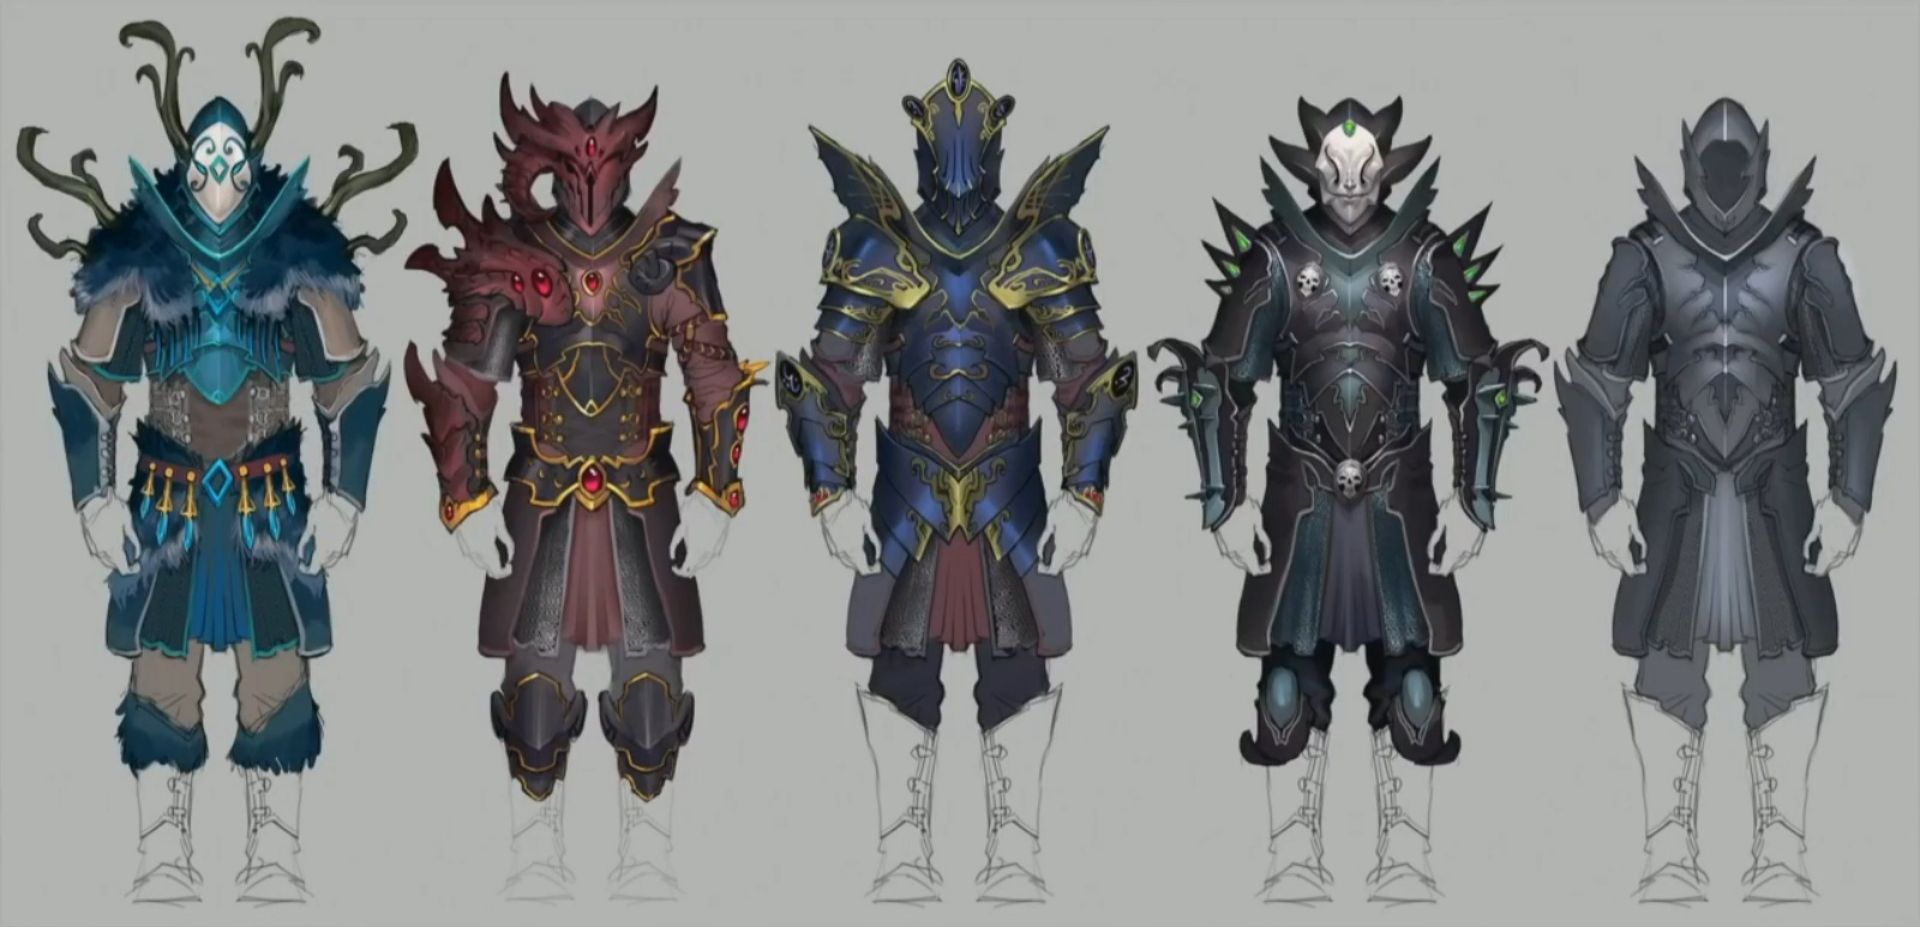 Rs3 Heart Of The Gielinor Armors Concept Art Runescape All Styles Plus Hybrid And Basic Typeless One